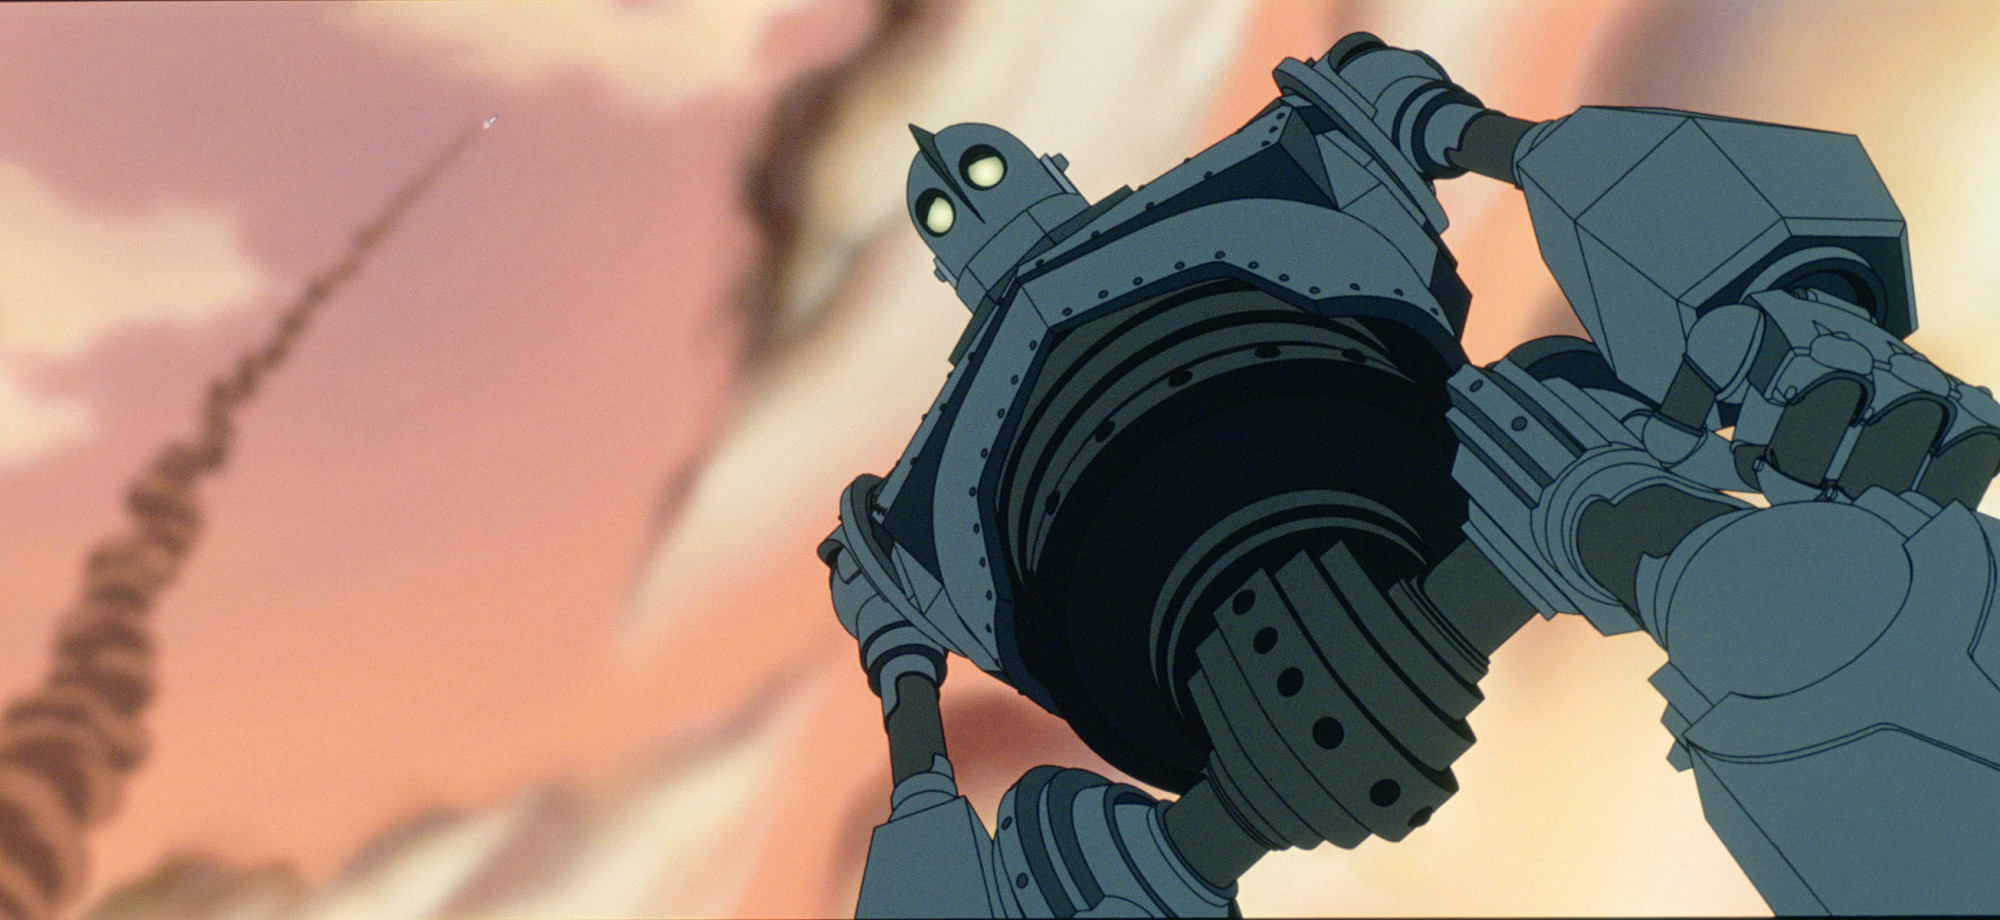 Vin Diesel in The Iron Giant (1999)